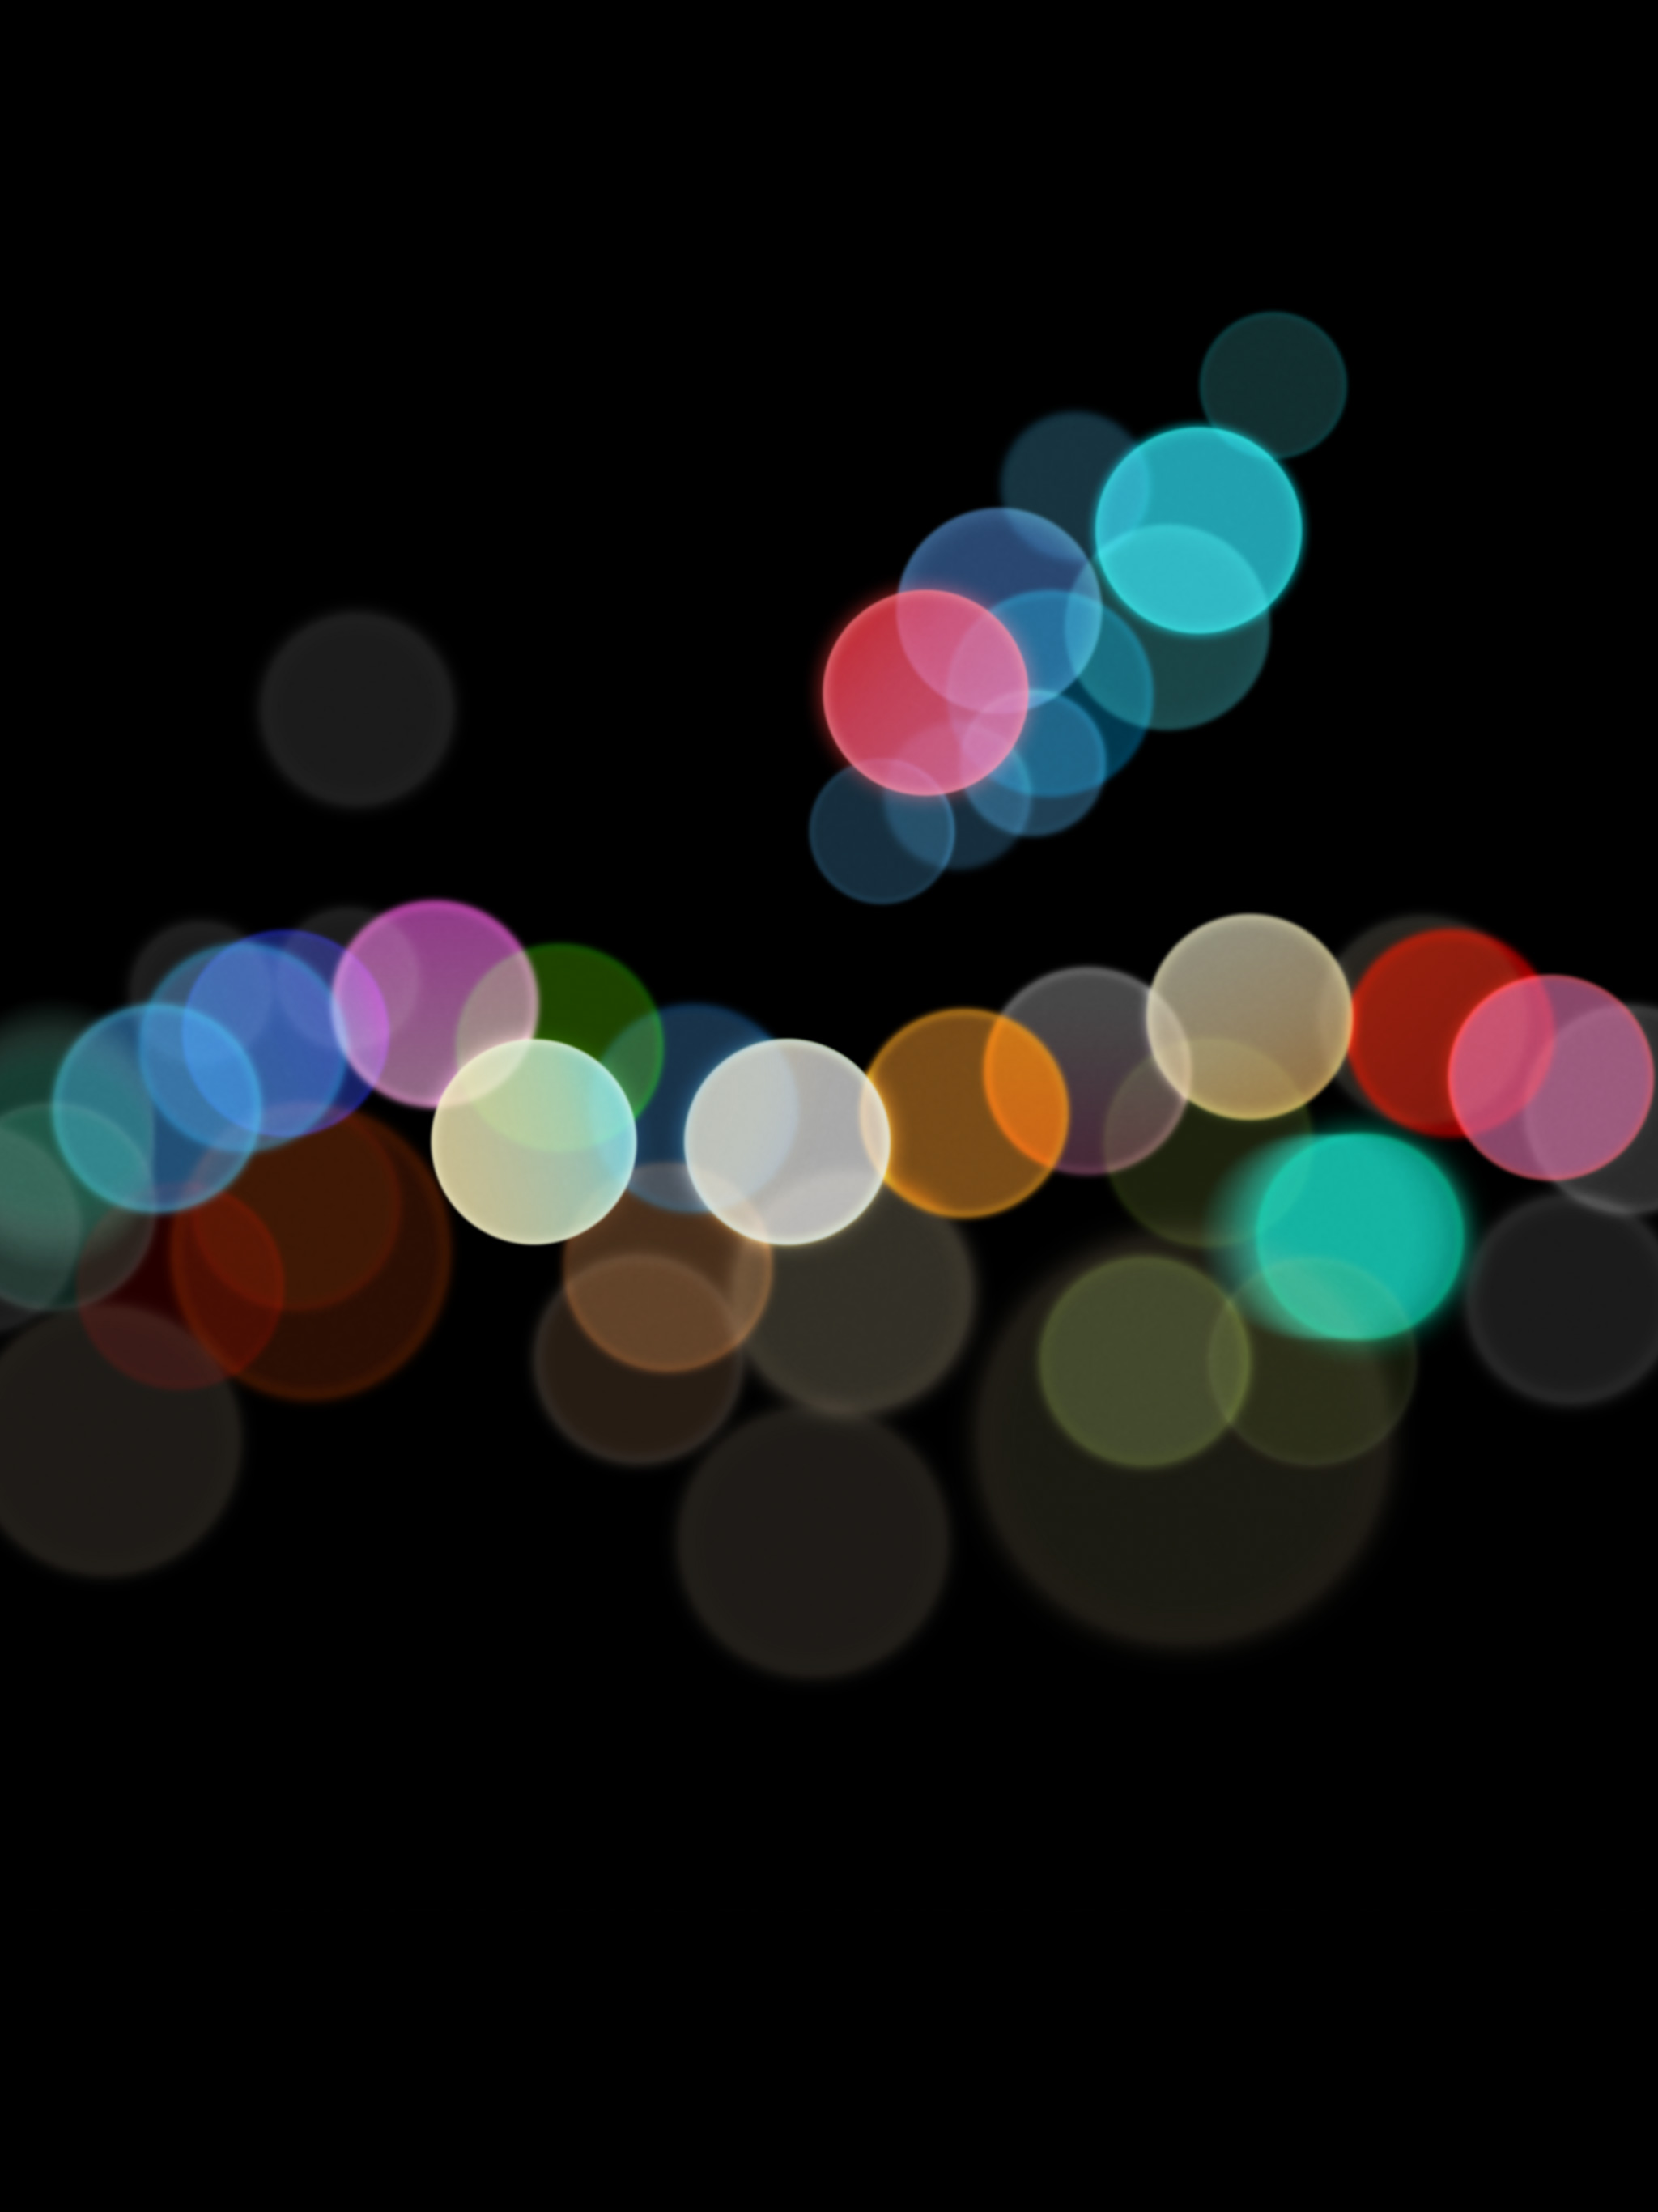 September 7 Apple Event Wallpapers See You On The 7th